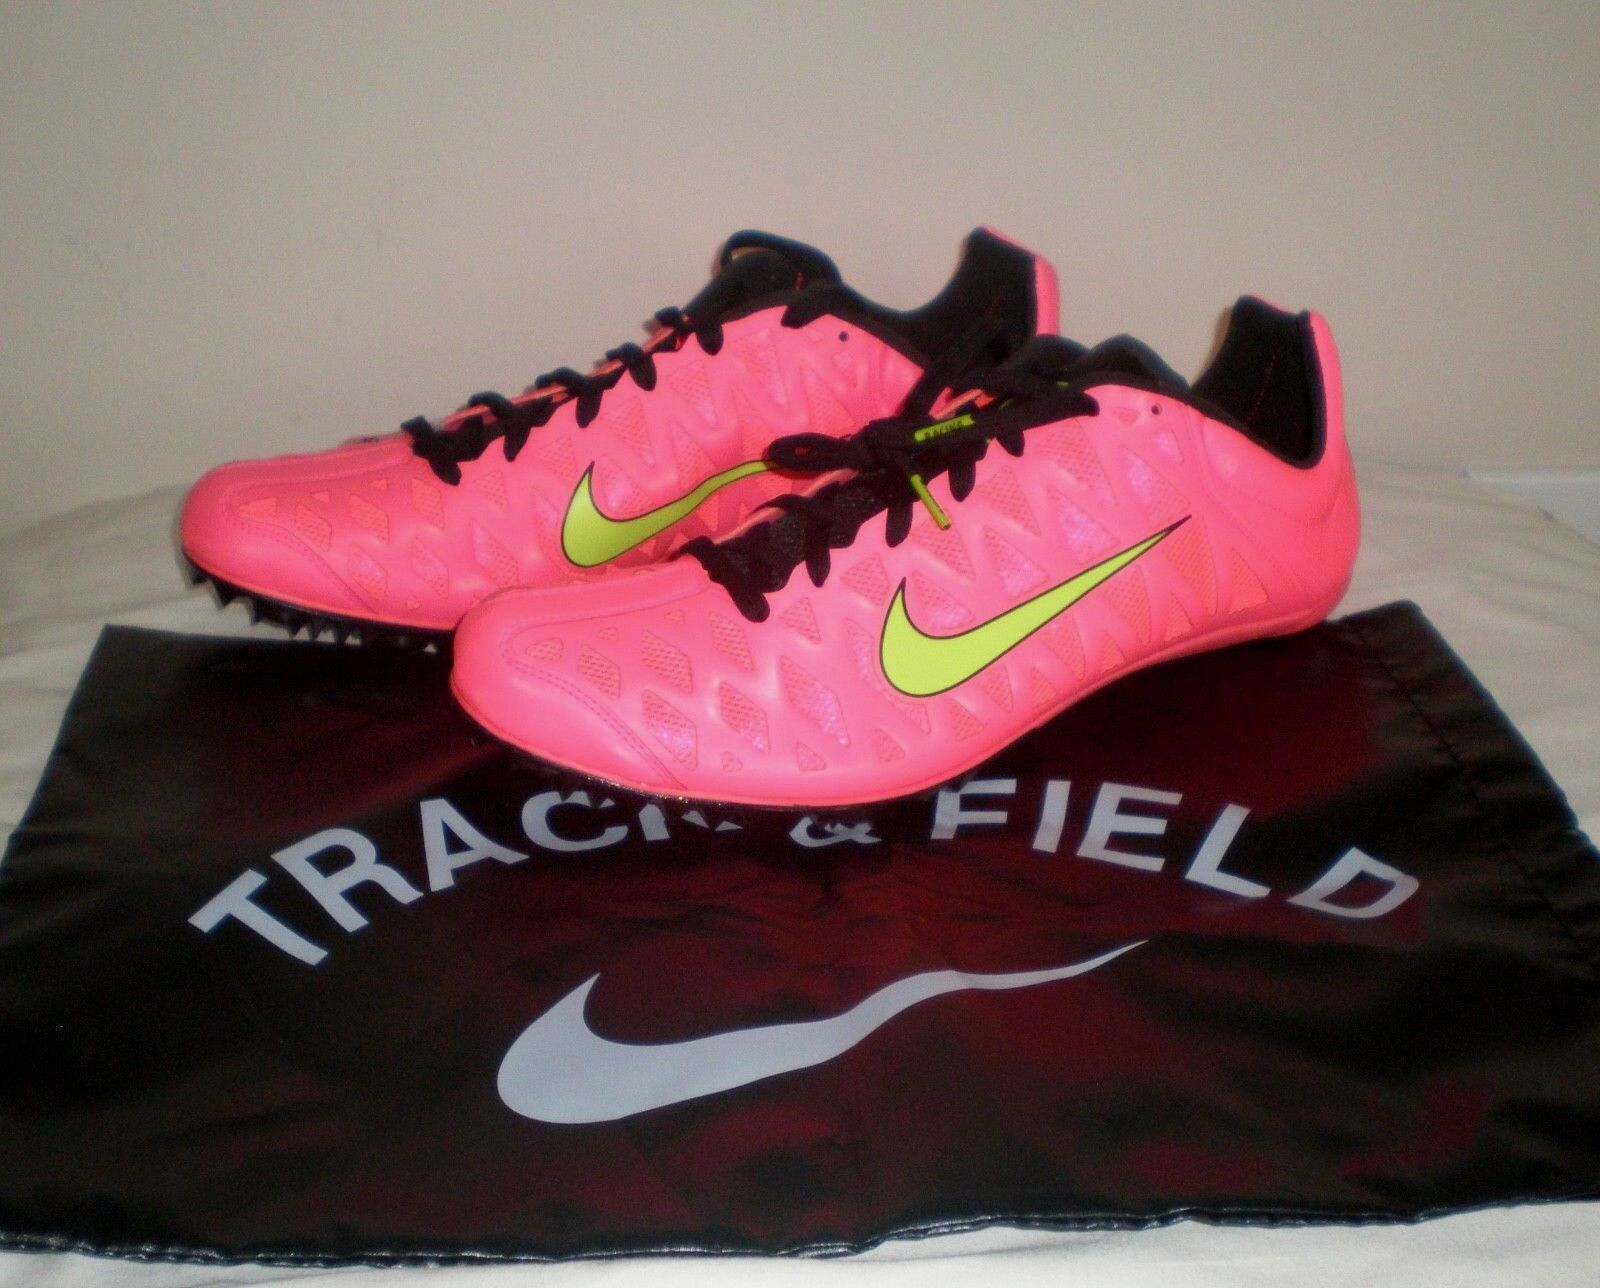 120 Men NIKE ZOOM Maxcat 4 Track Sprint Running shoes Spikes 549150 603 PUNCH 14